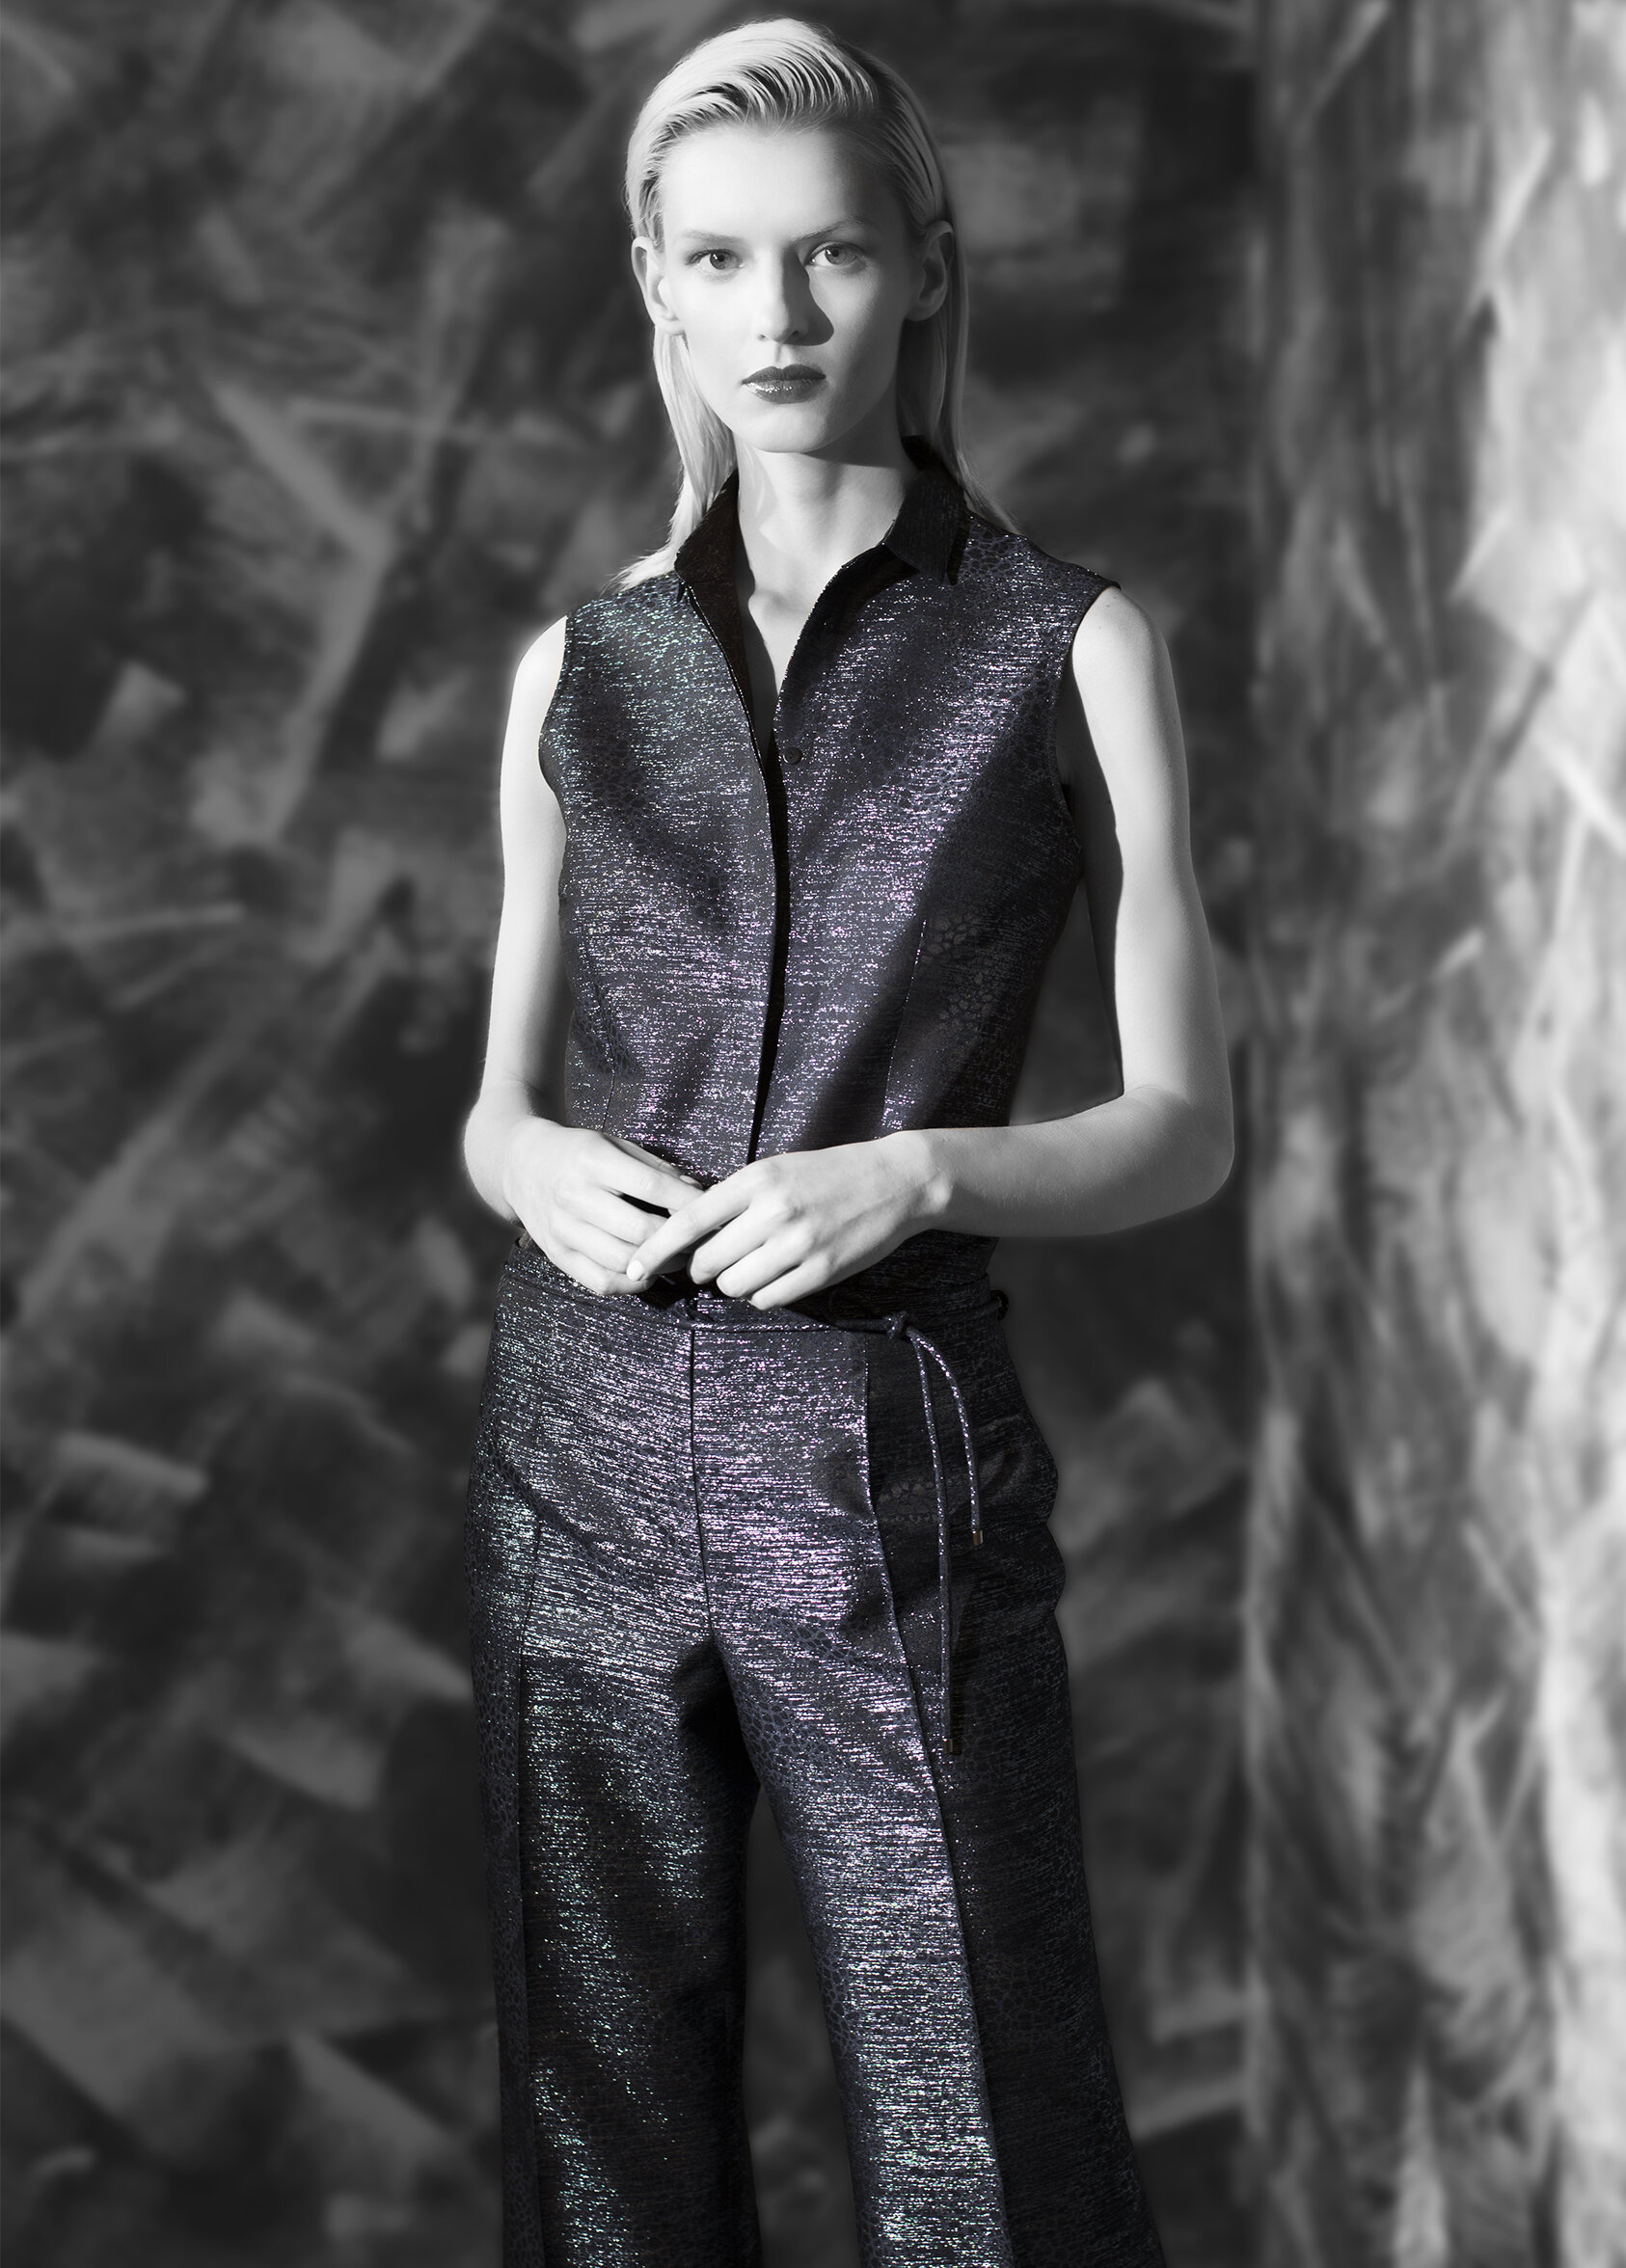 """Abstract lame jacquard sleeveless shirt and wide leg trouser with belt tie  onyx midnight opal garnet   """"Second skin"""" cashmere turtleneck  onyx midnight opal teal onyx azurite"""